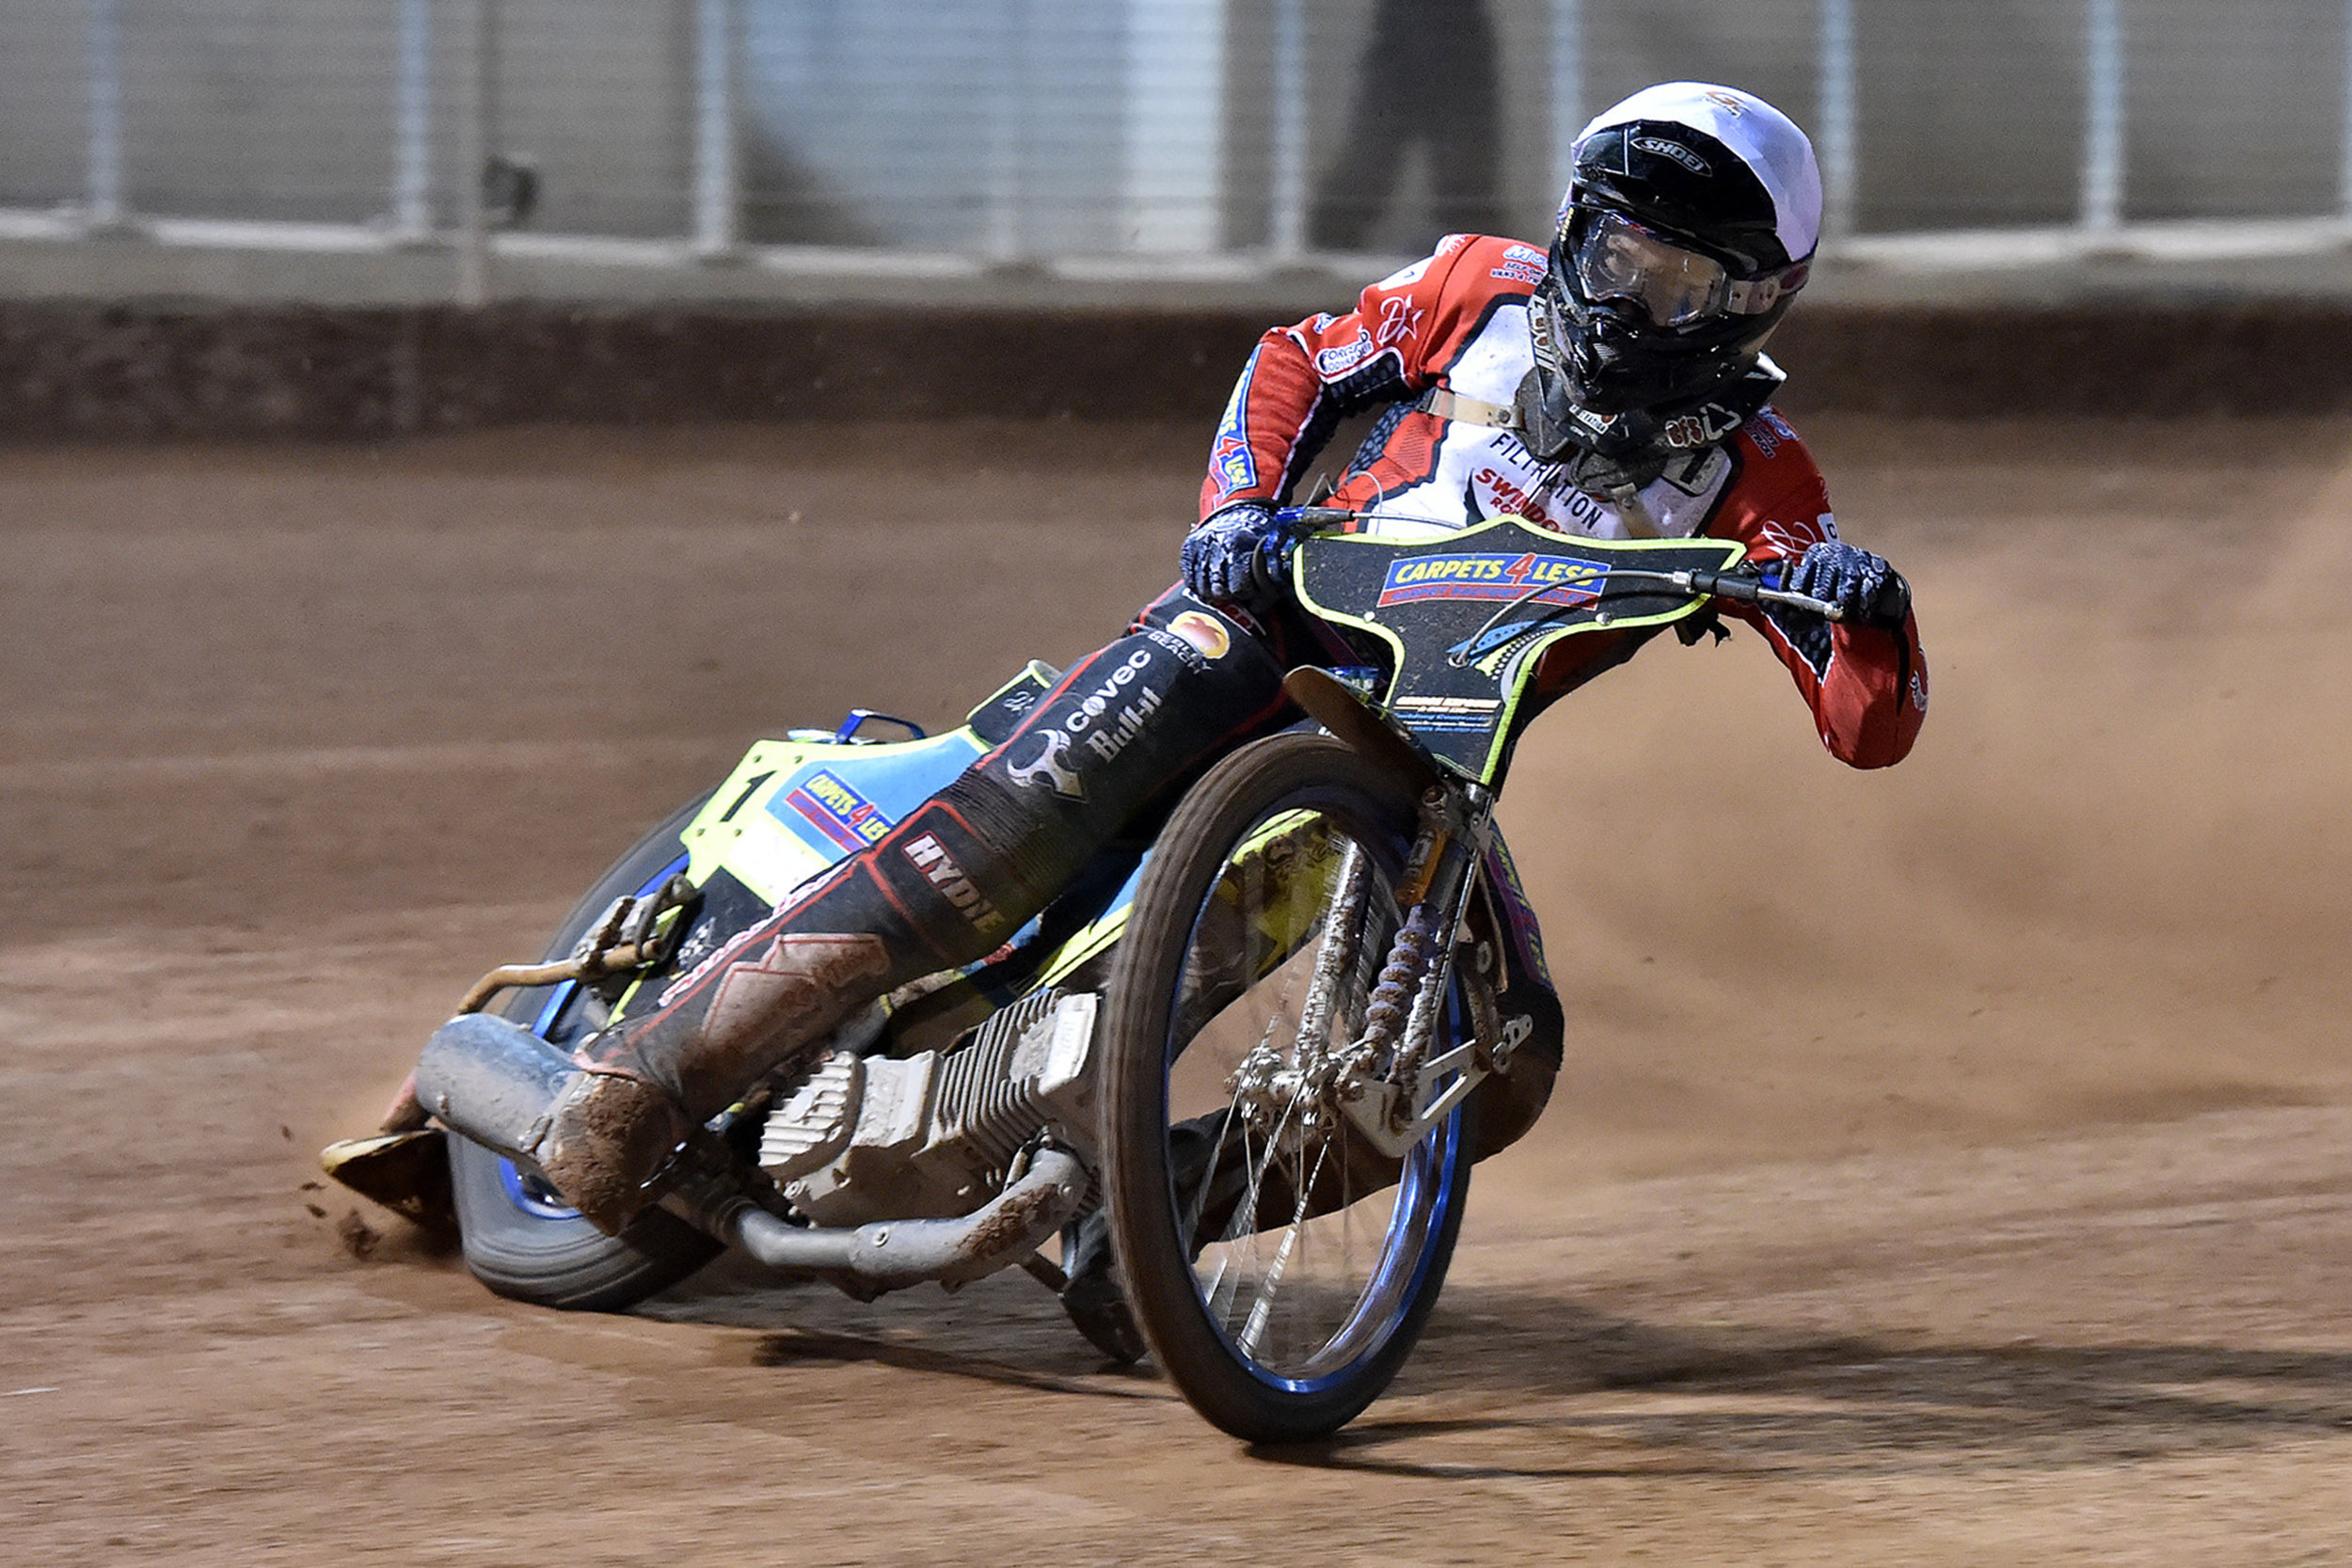 Nick Morris began his speedway career at Belle Vue's neighbouring track, Buxton